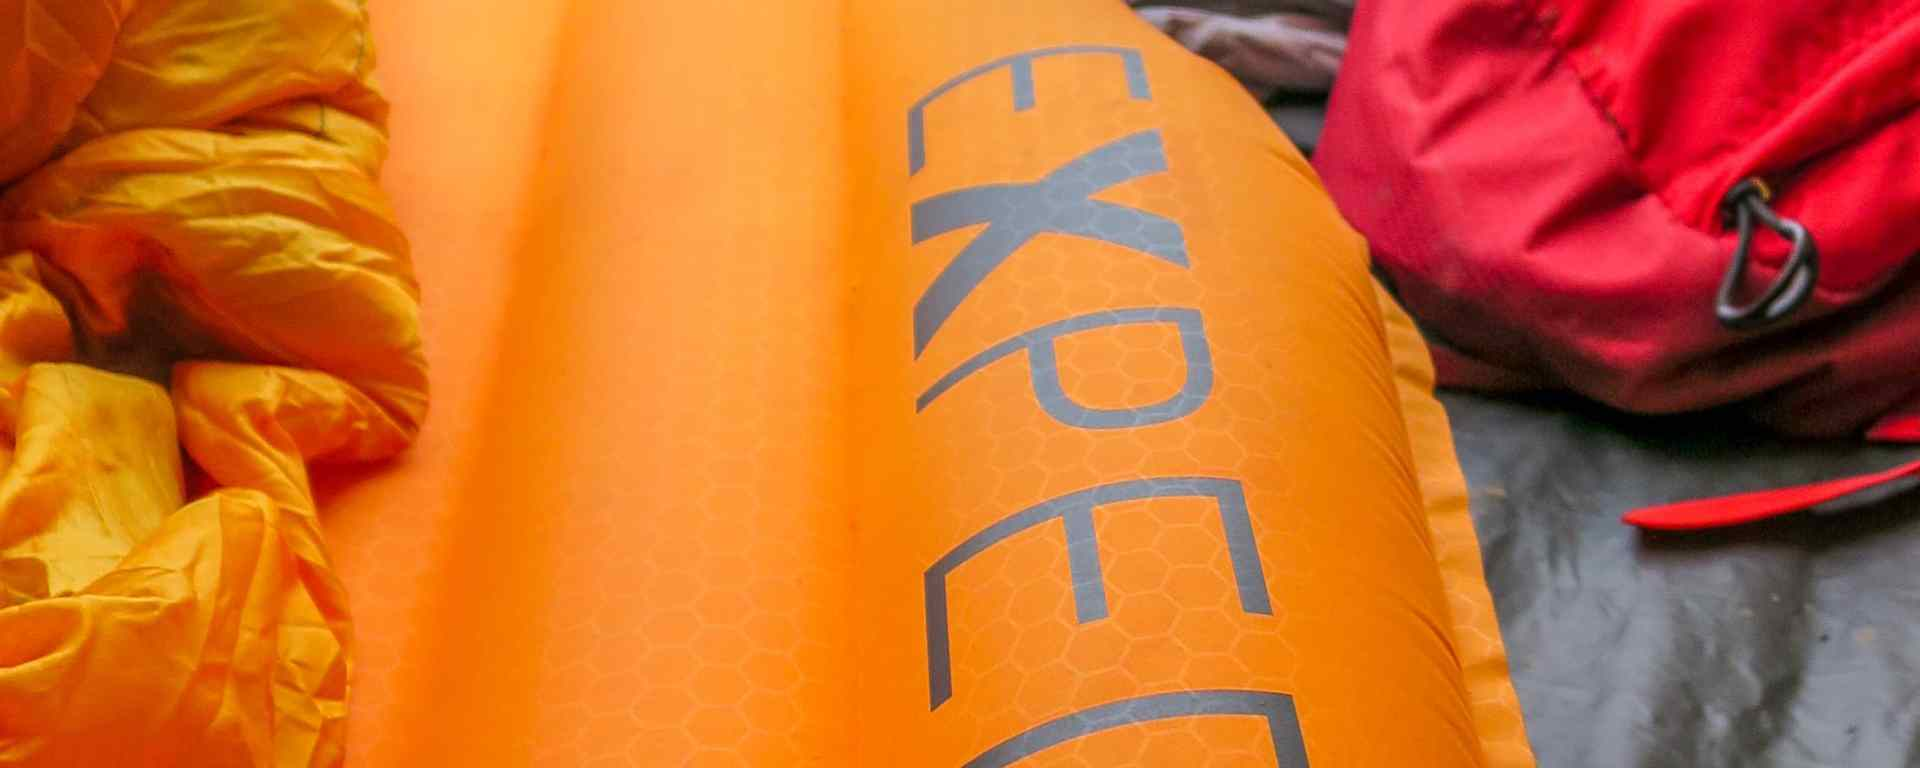 Exped Synmat Hyperlite Review Black Sheep Adventure Sports